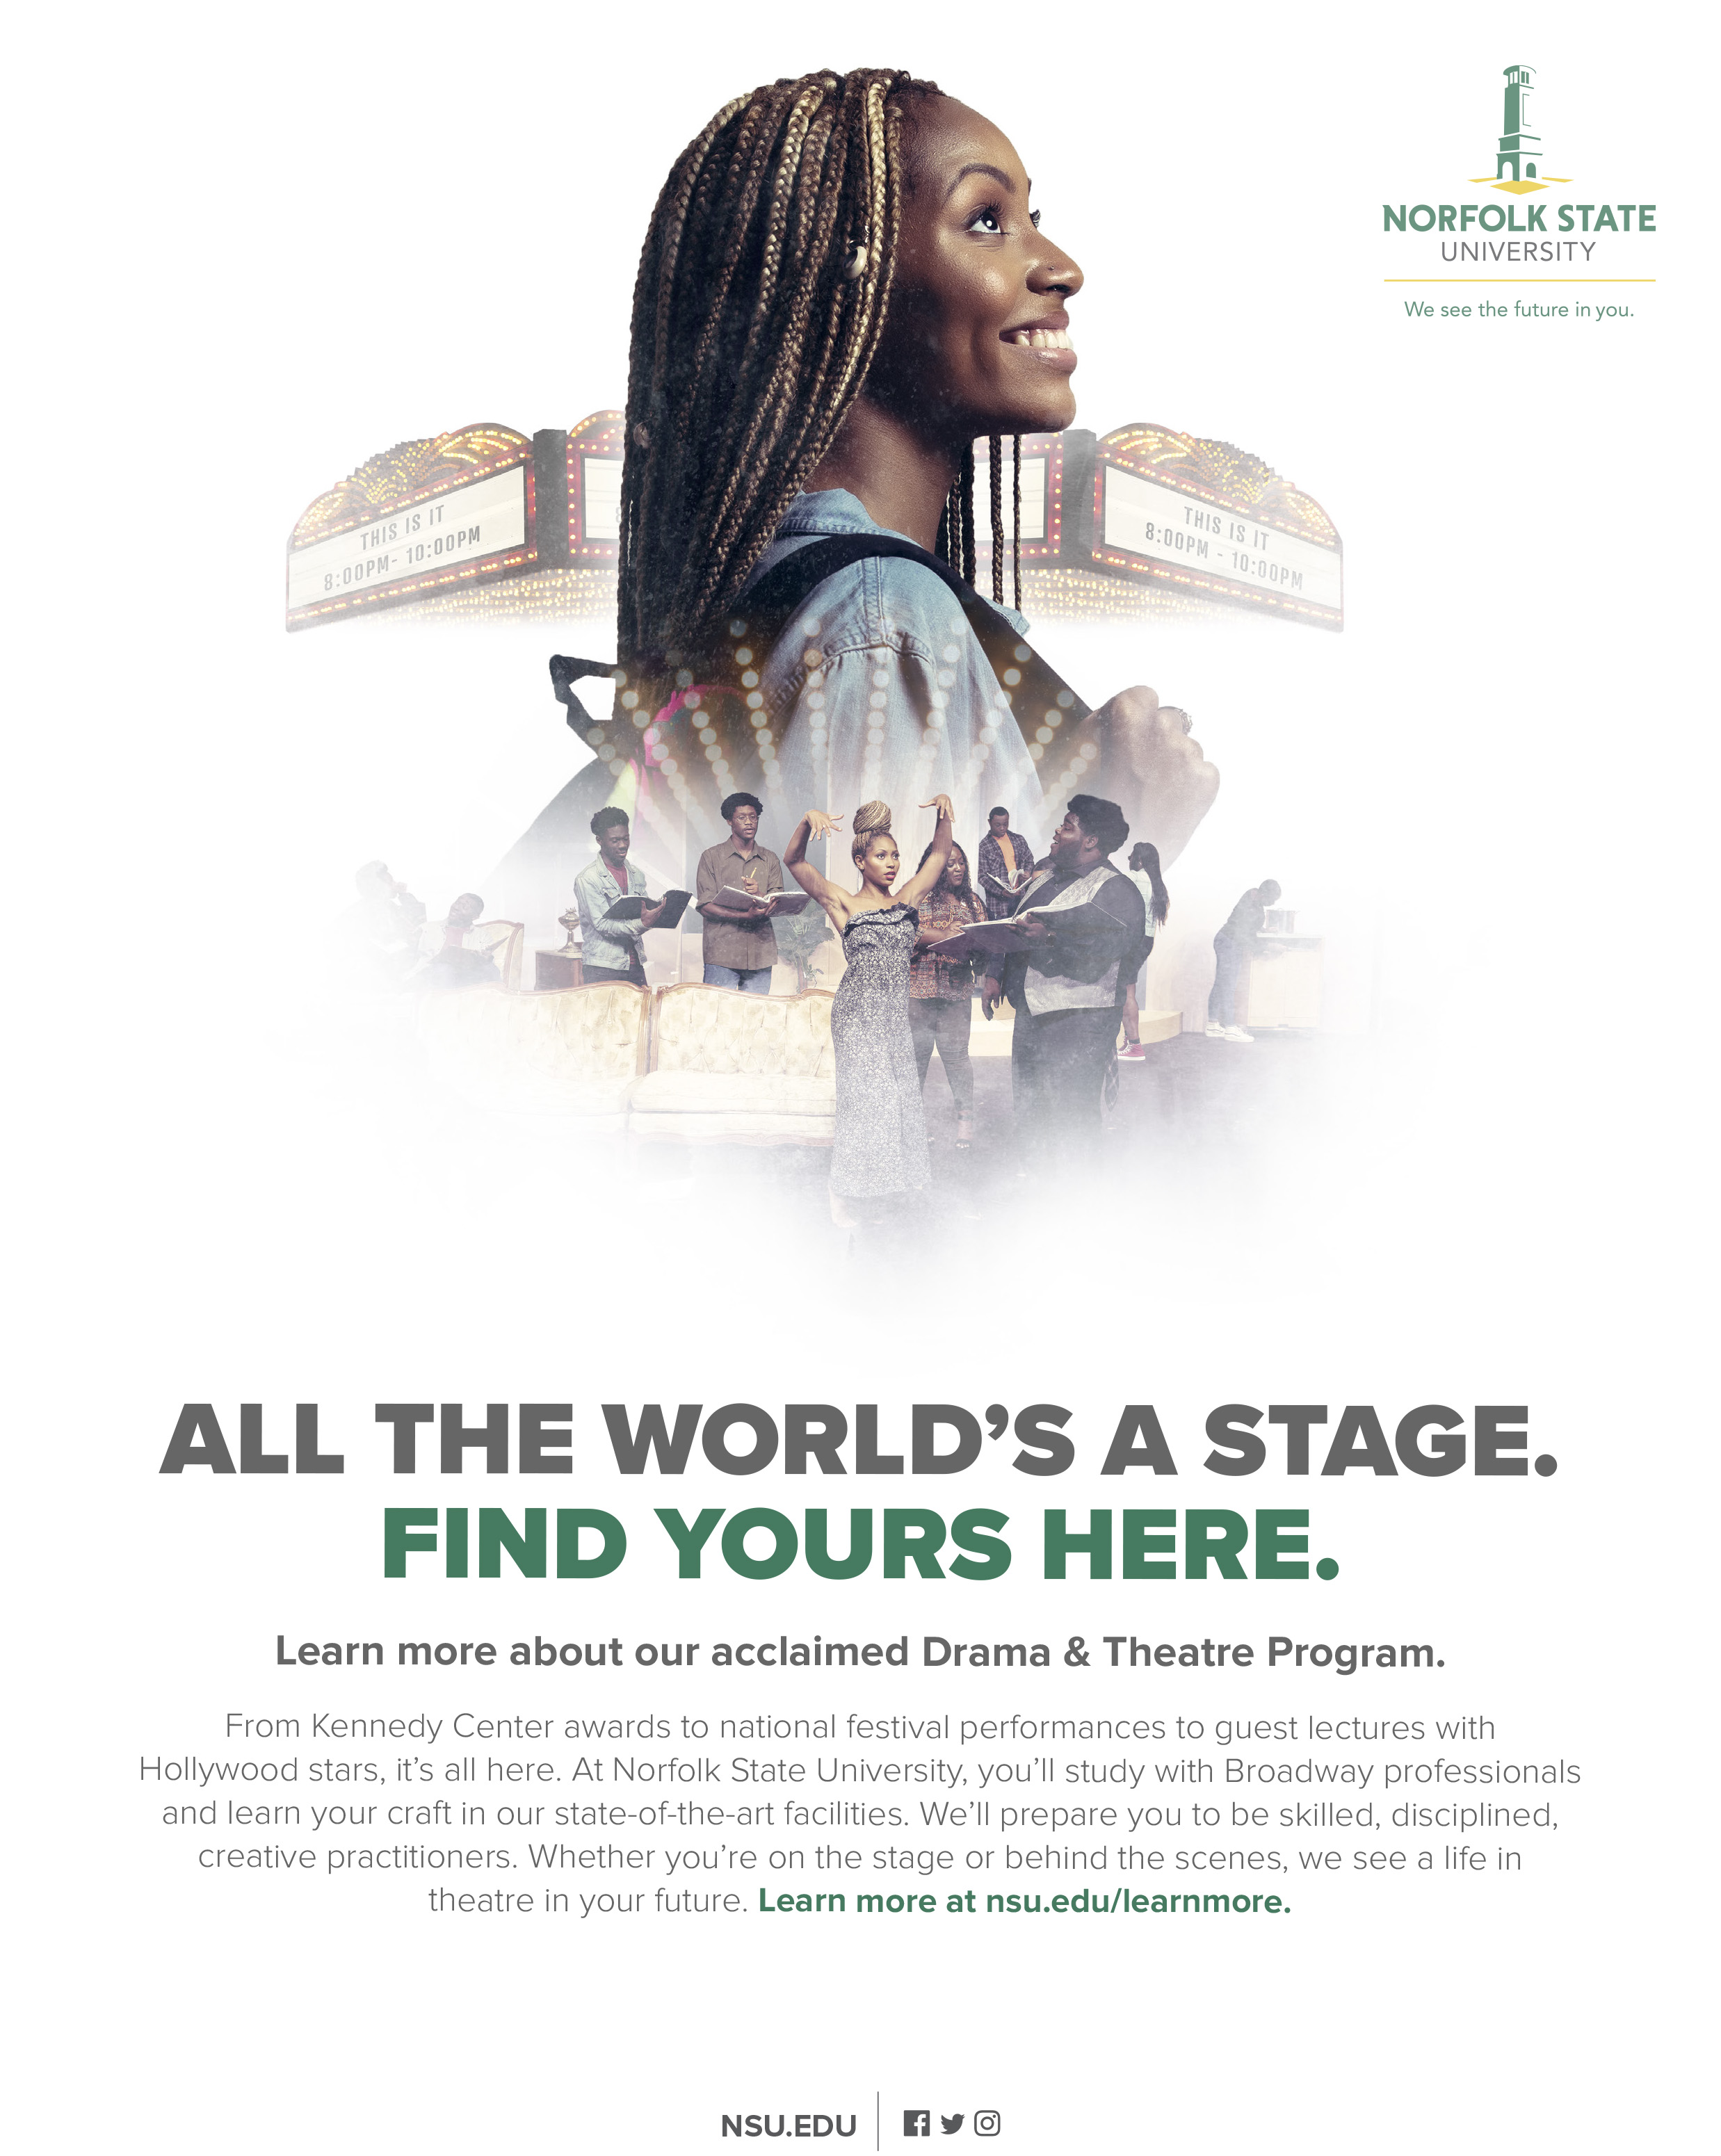 All the world's a stage. Find yours here.Learn more about our acclaimed Drama & Theatre Program.From Kennedy Center awards to national festival performances to guest lectures with Hollywood stars, it's all here. At Norfolk State University, you'll study with Broadway professionals and learn your craft in our state-of-the-art facilities. We'll prepare you to be skilled, disciplined,creative practitioners. Whether you're on the stage or behind the scenes, we see a life in theatre in your future. Learn more at nsu@edu/learnmore.